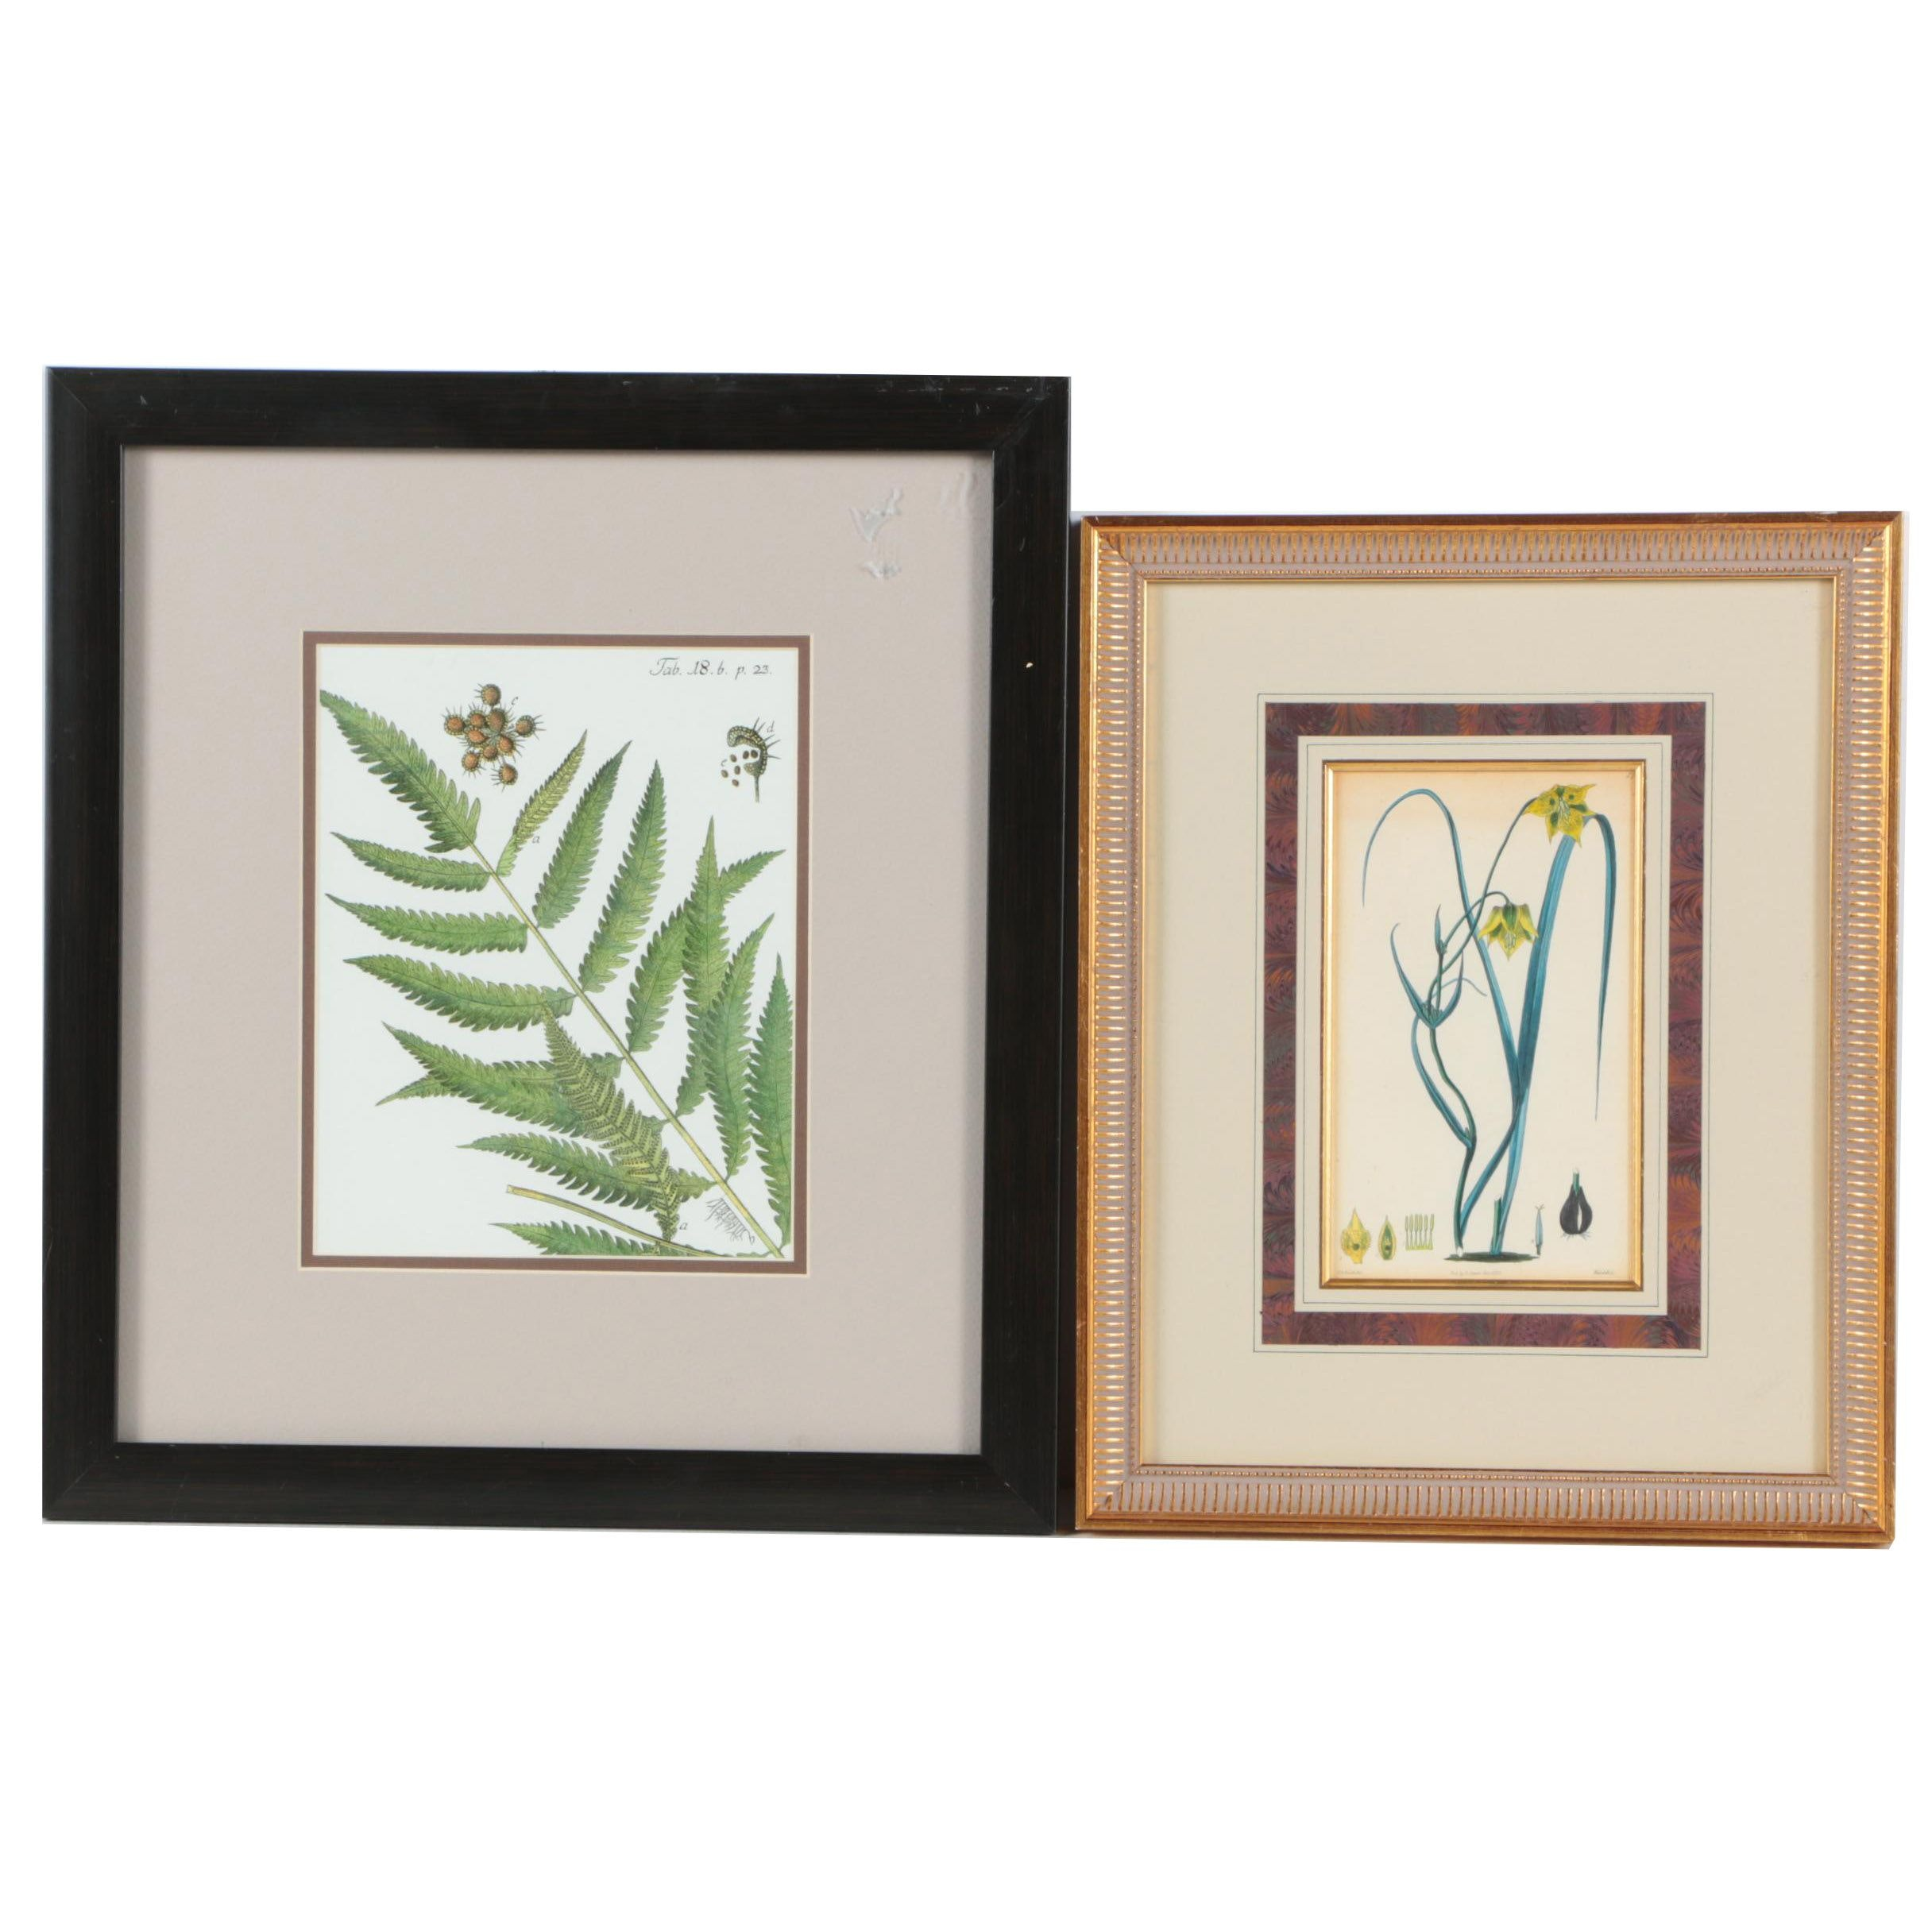 Botanical Illustrations Featuring Hand Colored Etching and Offset Lithograph